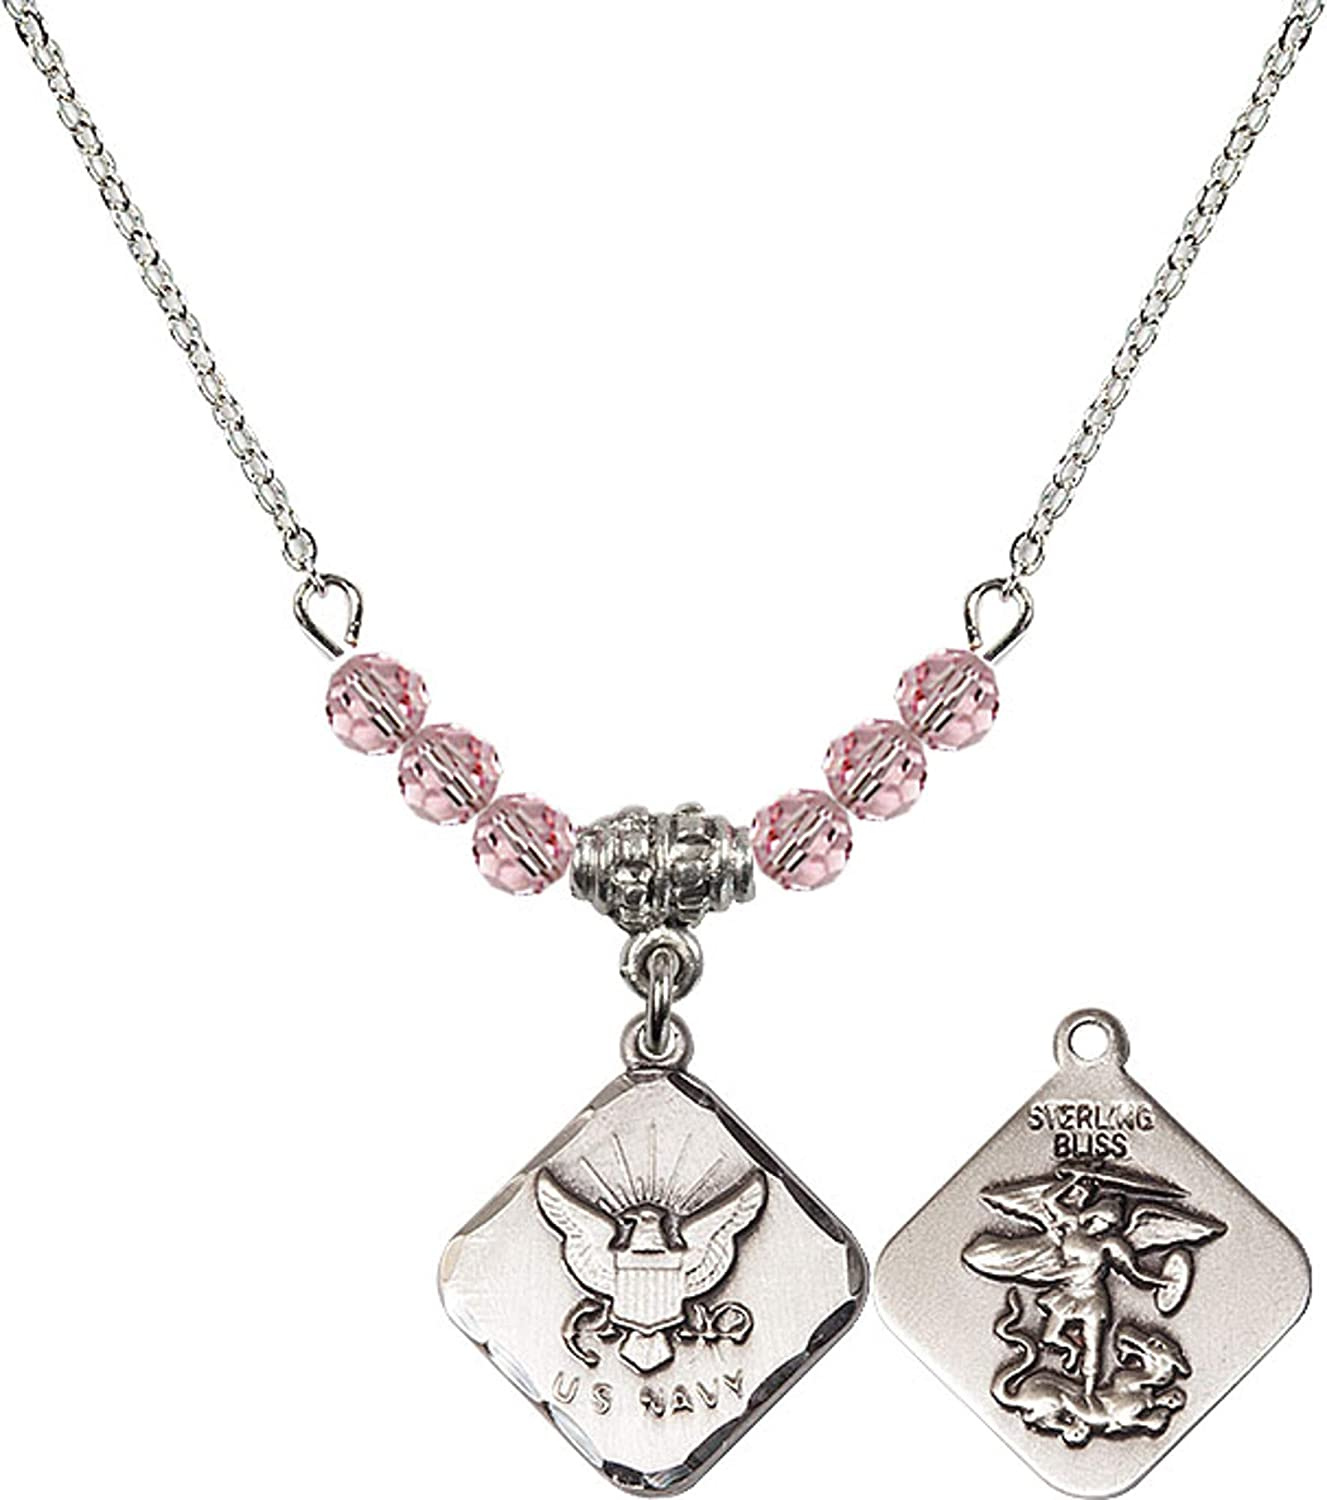 Bonyak Jewelry 18 Inch Rhodium Plated Necklace w// 4mm Light Rose Pink October Birth Month Stone Beads and Navy Diamond Charm